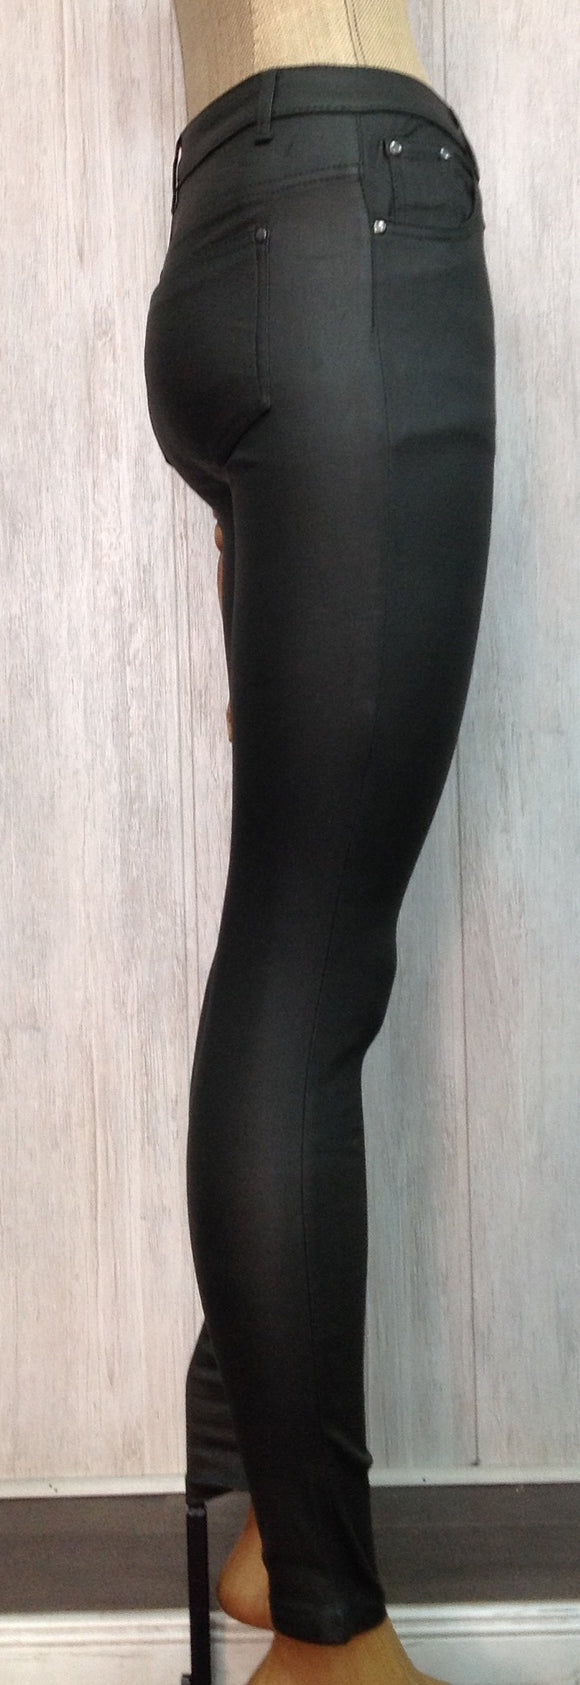 Leggings verdes